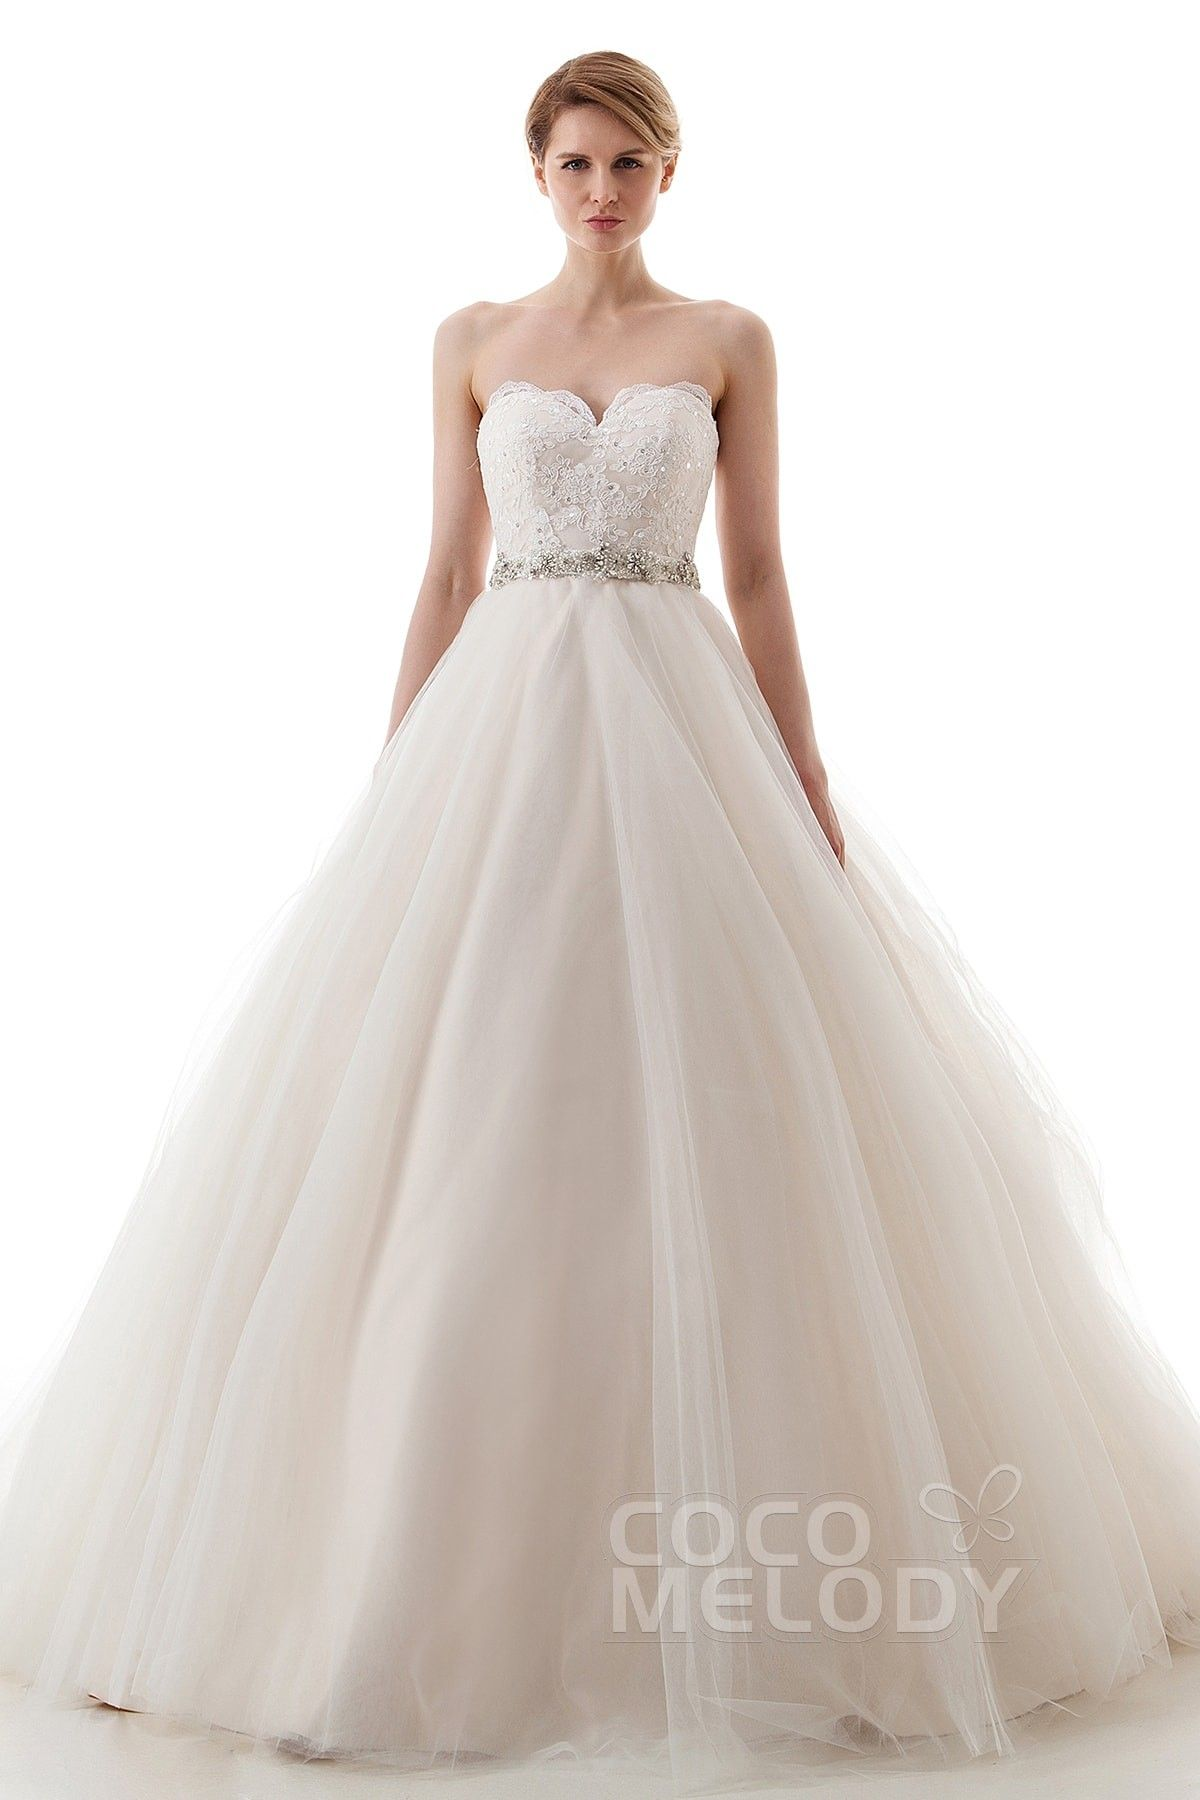 Champagne and ivory wedding dress  Perfect ALine Sweetheart Court Train Tulle IvoryChampagne